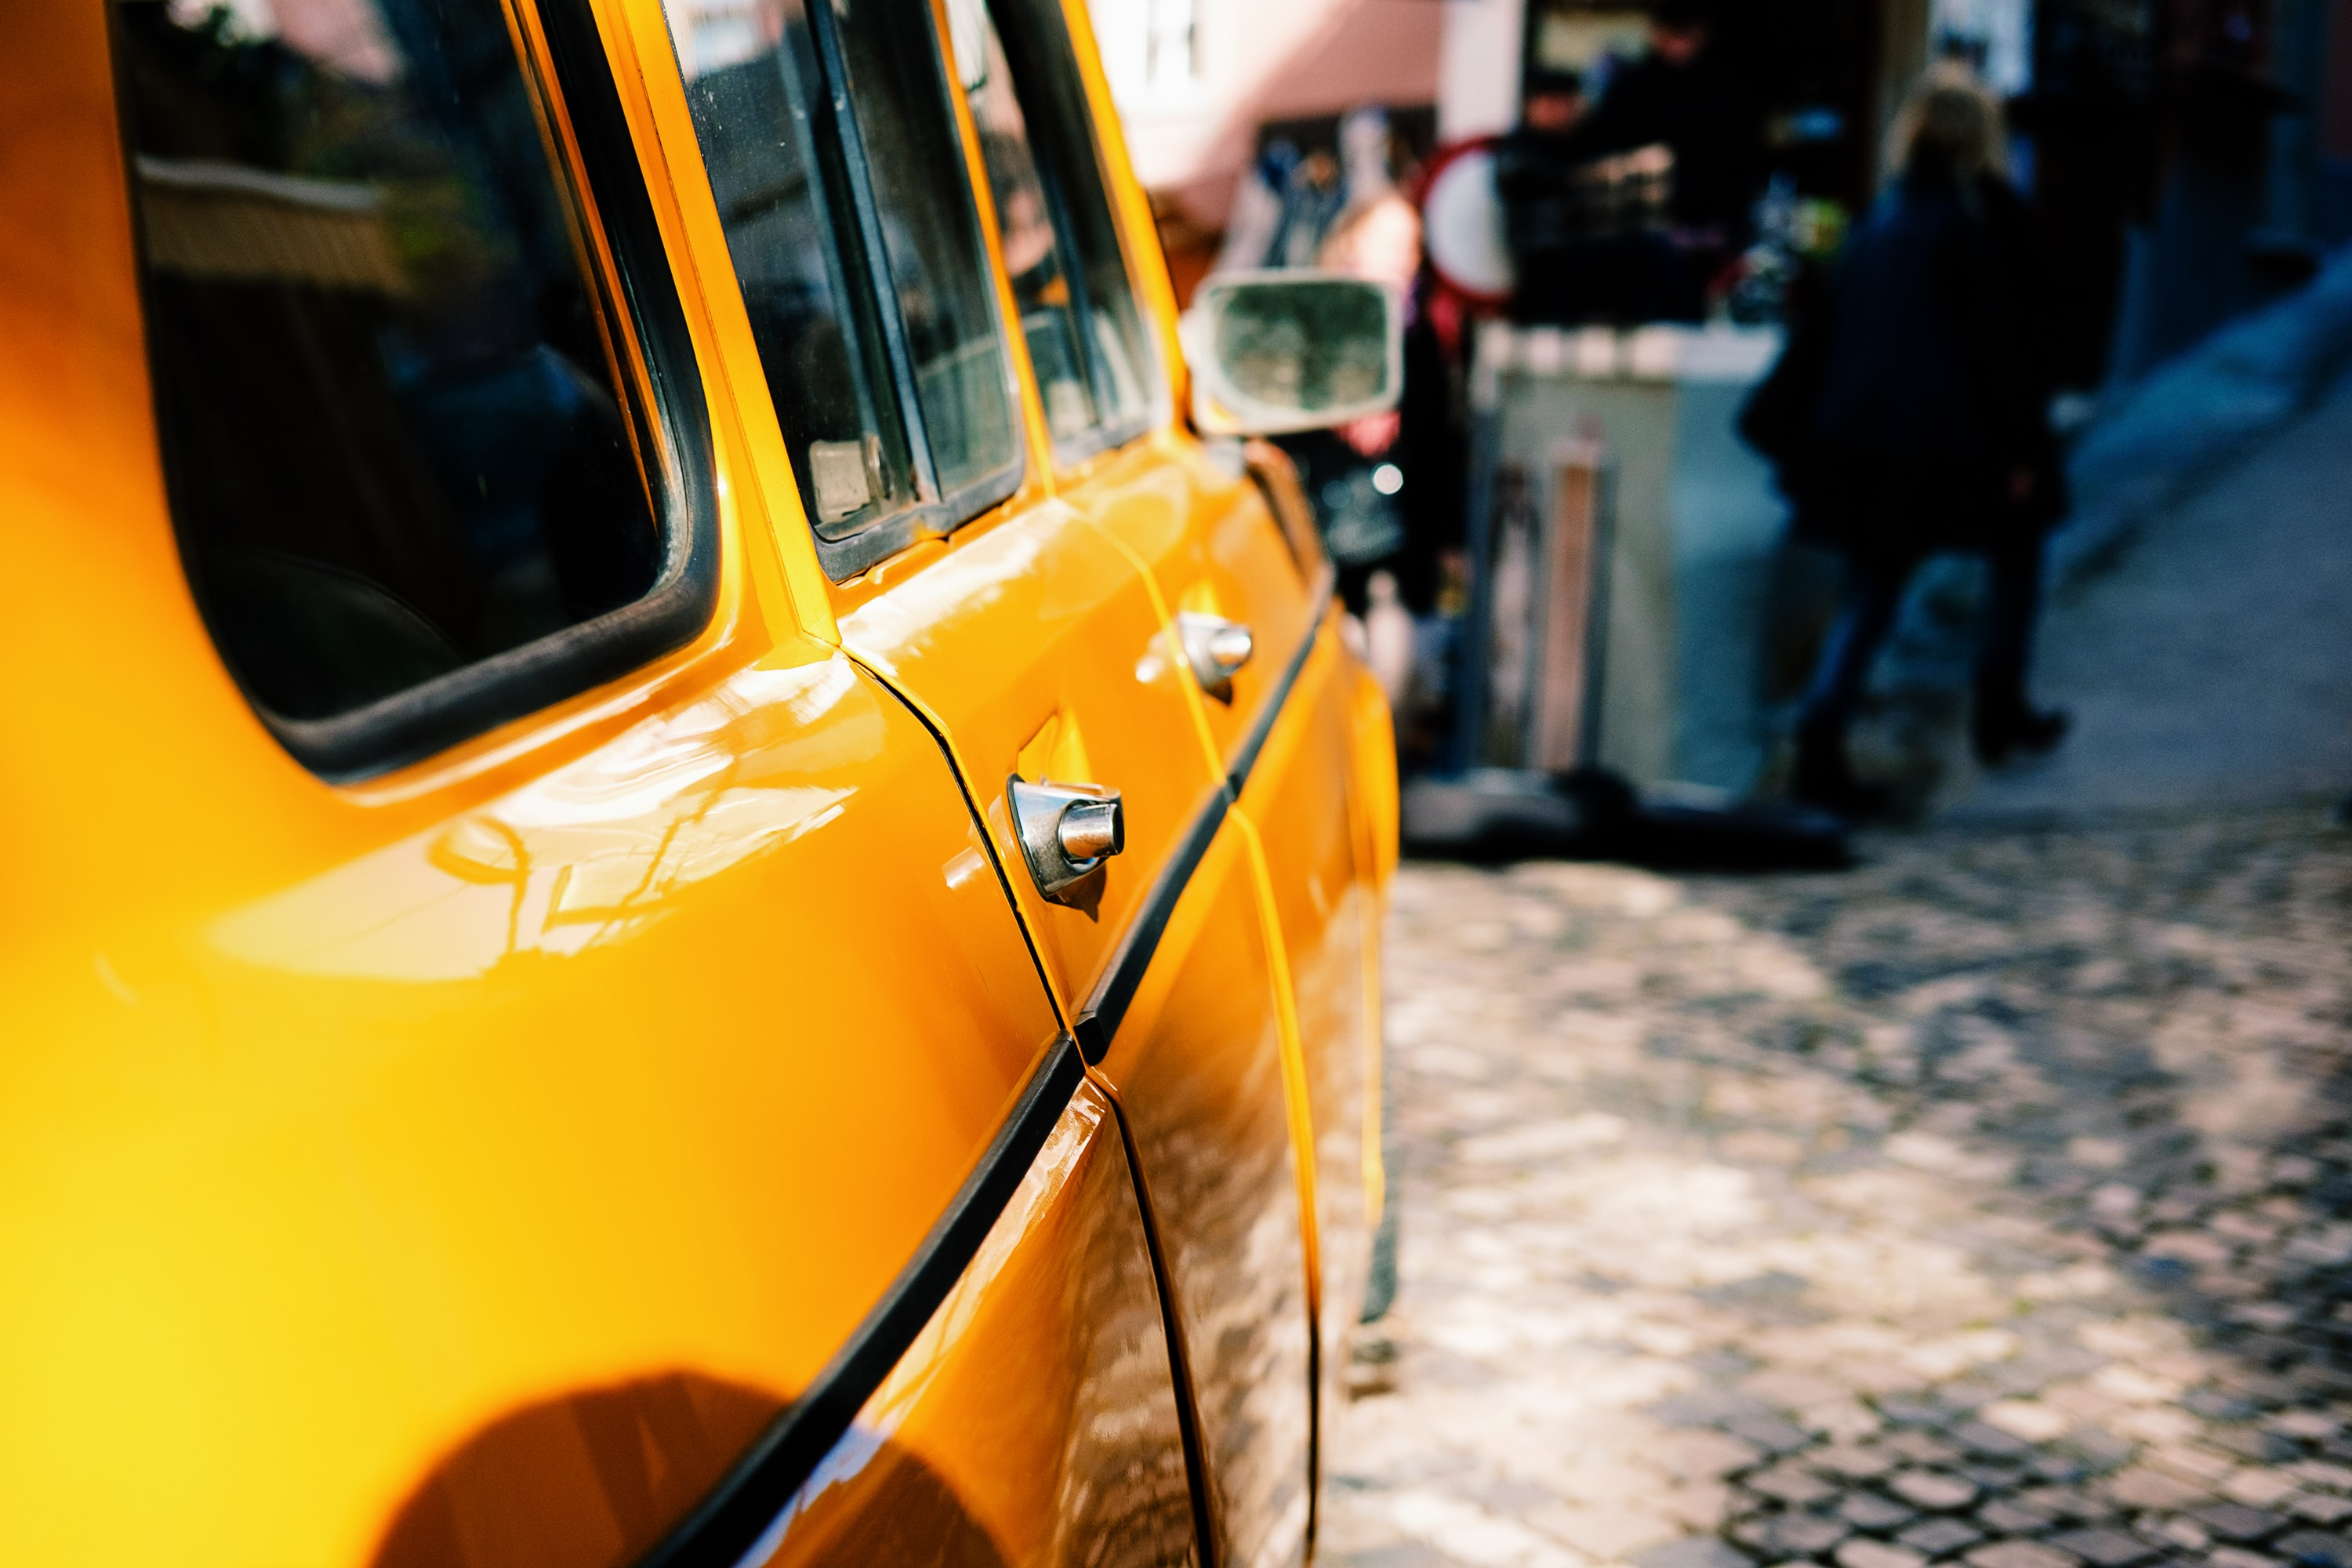 Side of a yellow car with people in the background